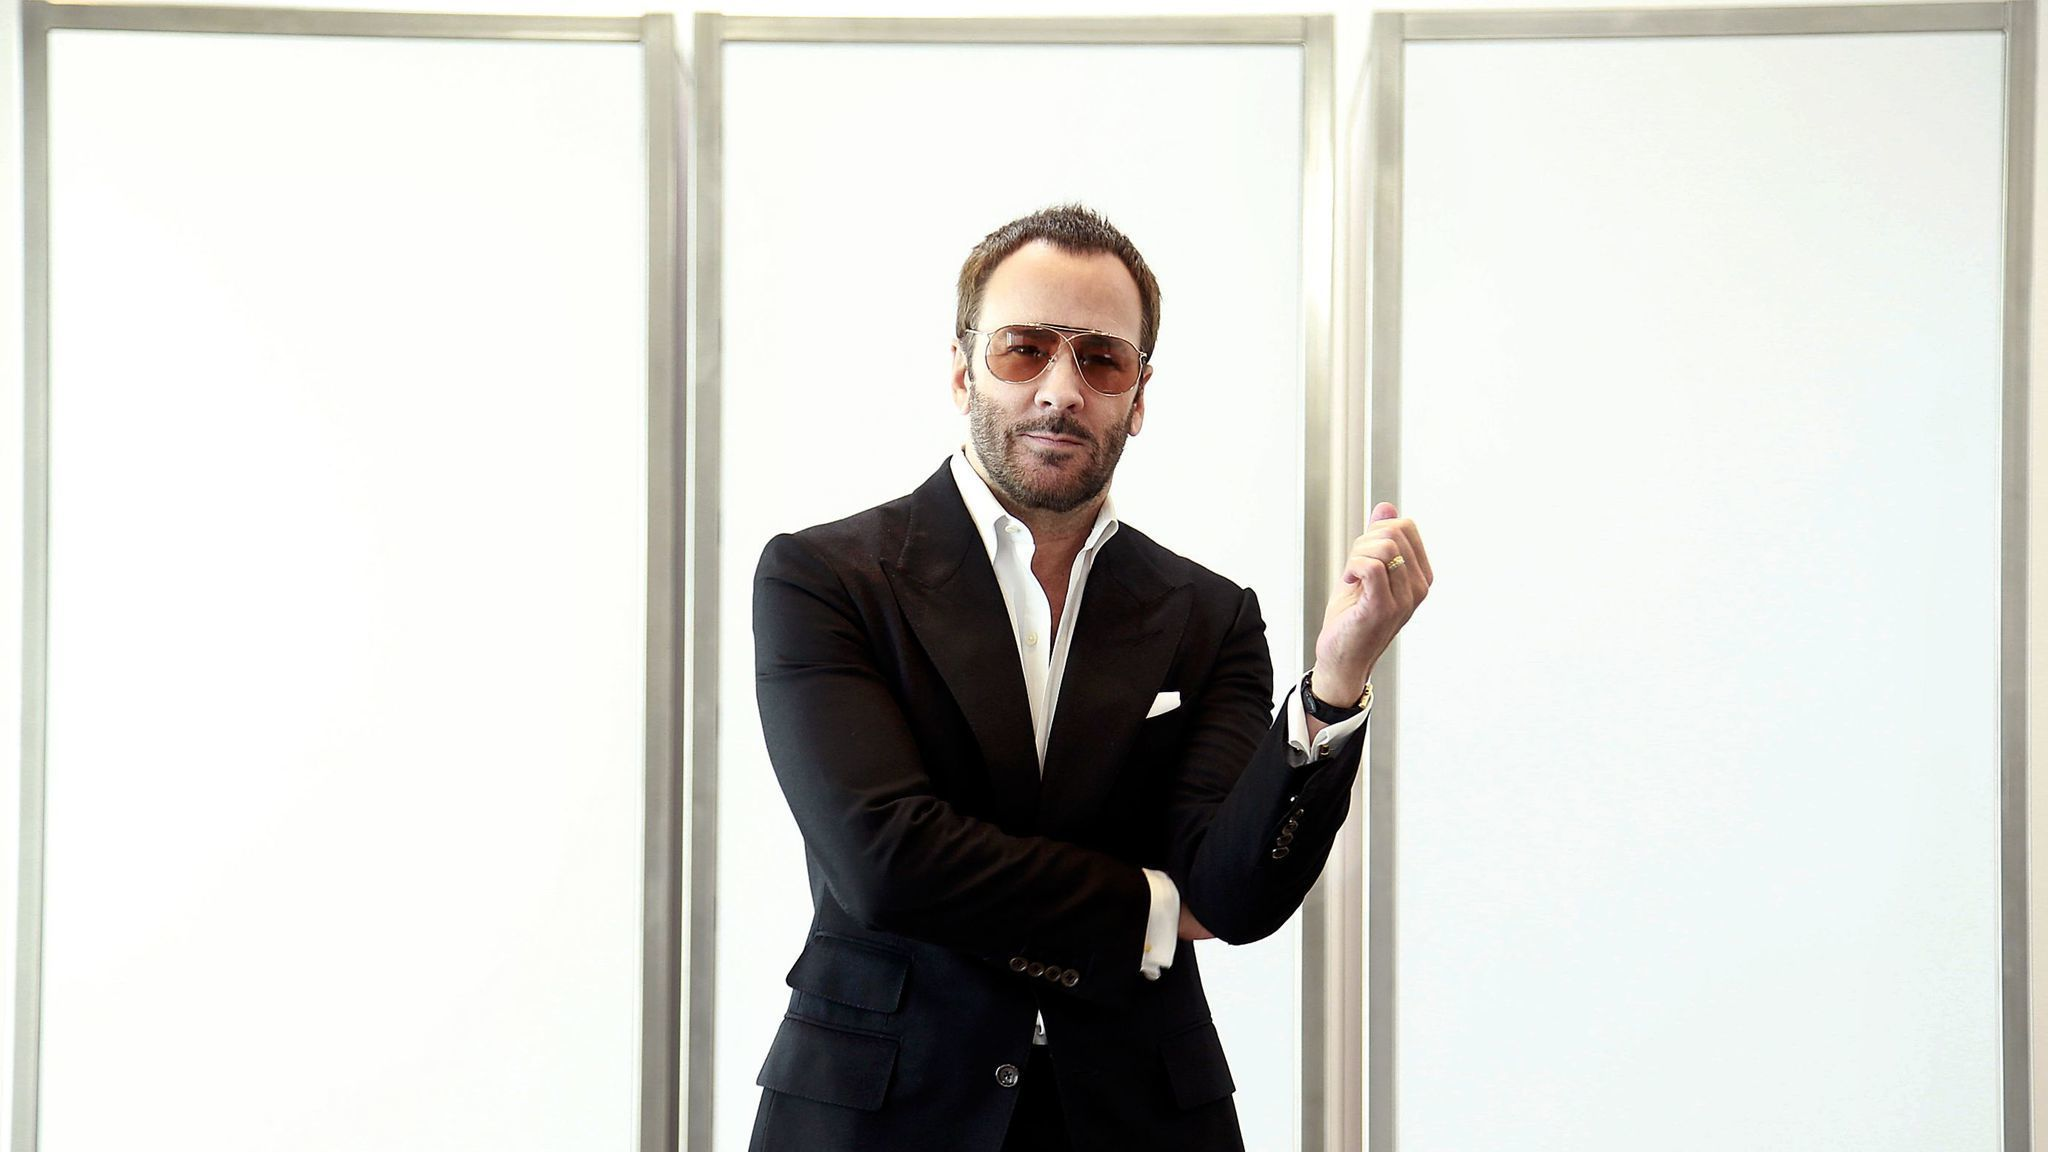 Fashion designer tom ford at the hollywood something or other awards - Tom Ford Crafts A Layered Thriller Within A Thriller With Nocturnal Animals La Times